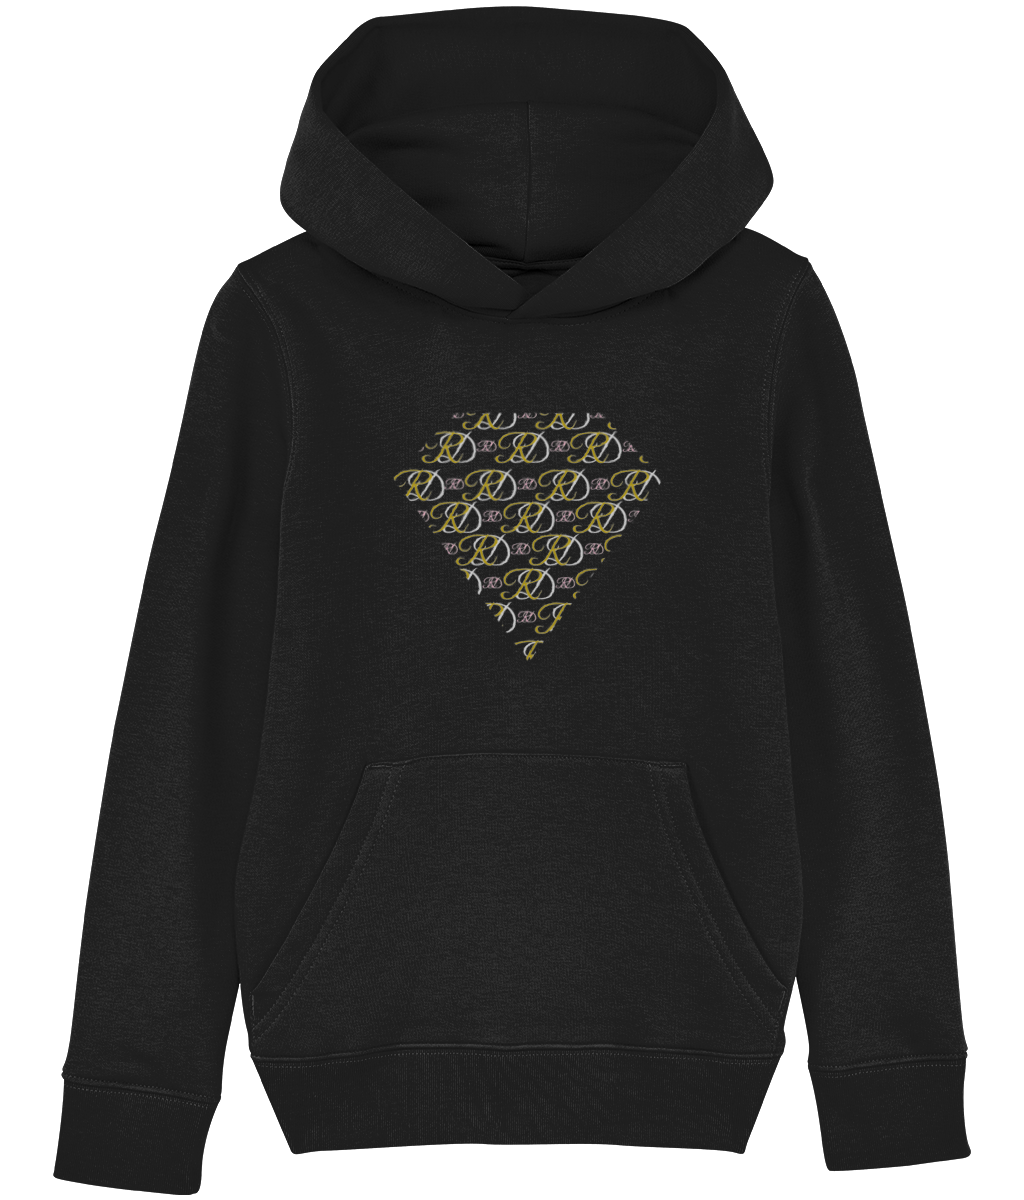 RoyalDrip Diamond Monogram Unisex Kids Hoodie